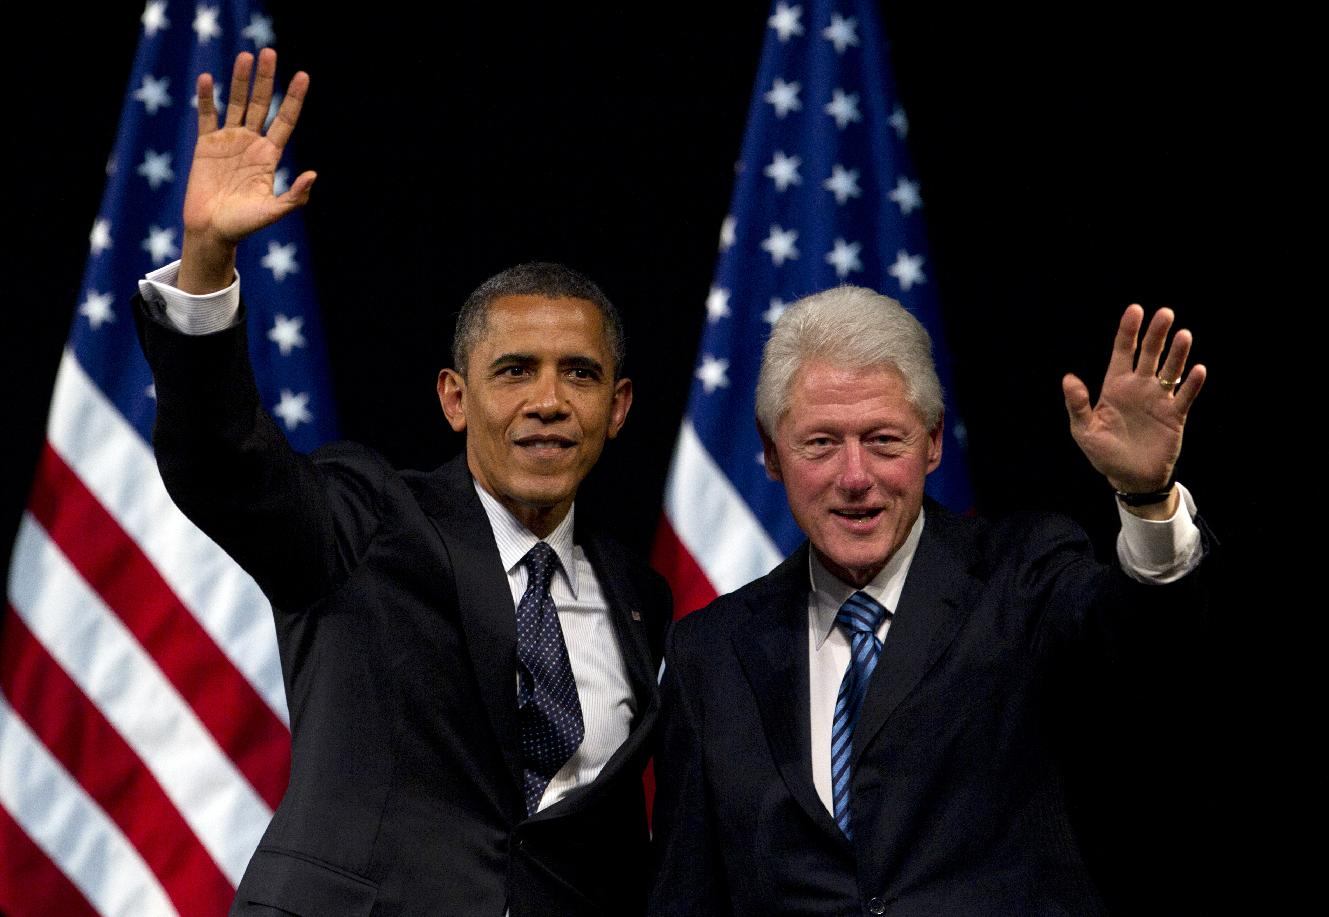 President Barack Obama and former President Bill Clinton campaign together in New York in June. (Carolyn Kaster/AP)